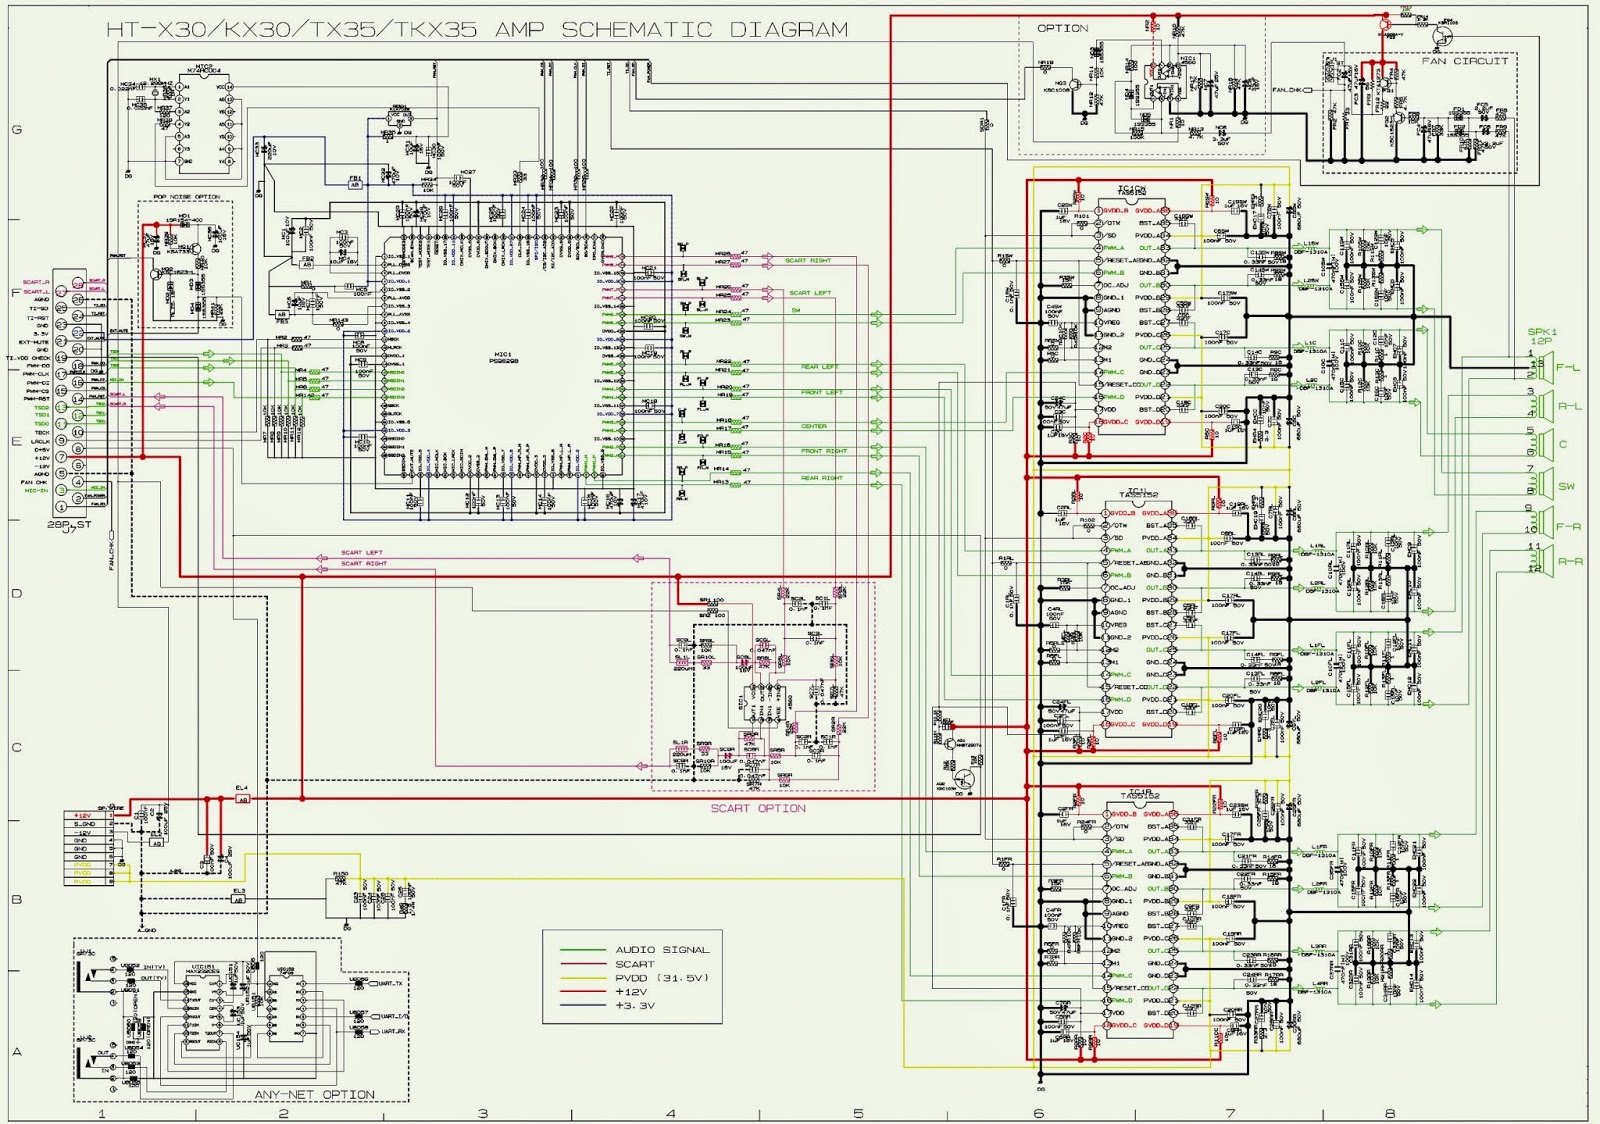 LED likewise Emky is en as well Samsung Ht X30 Ht X40 Dvd Receiver likewise Nissan Almera N16 Wiring Diagram furthermore Suzuki Gs550 Wiring Diagram. on electronic schematic diagrams